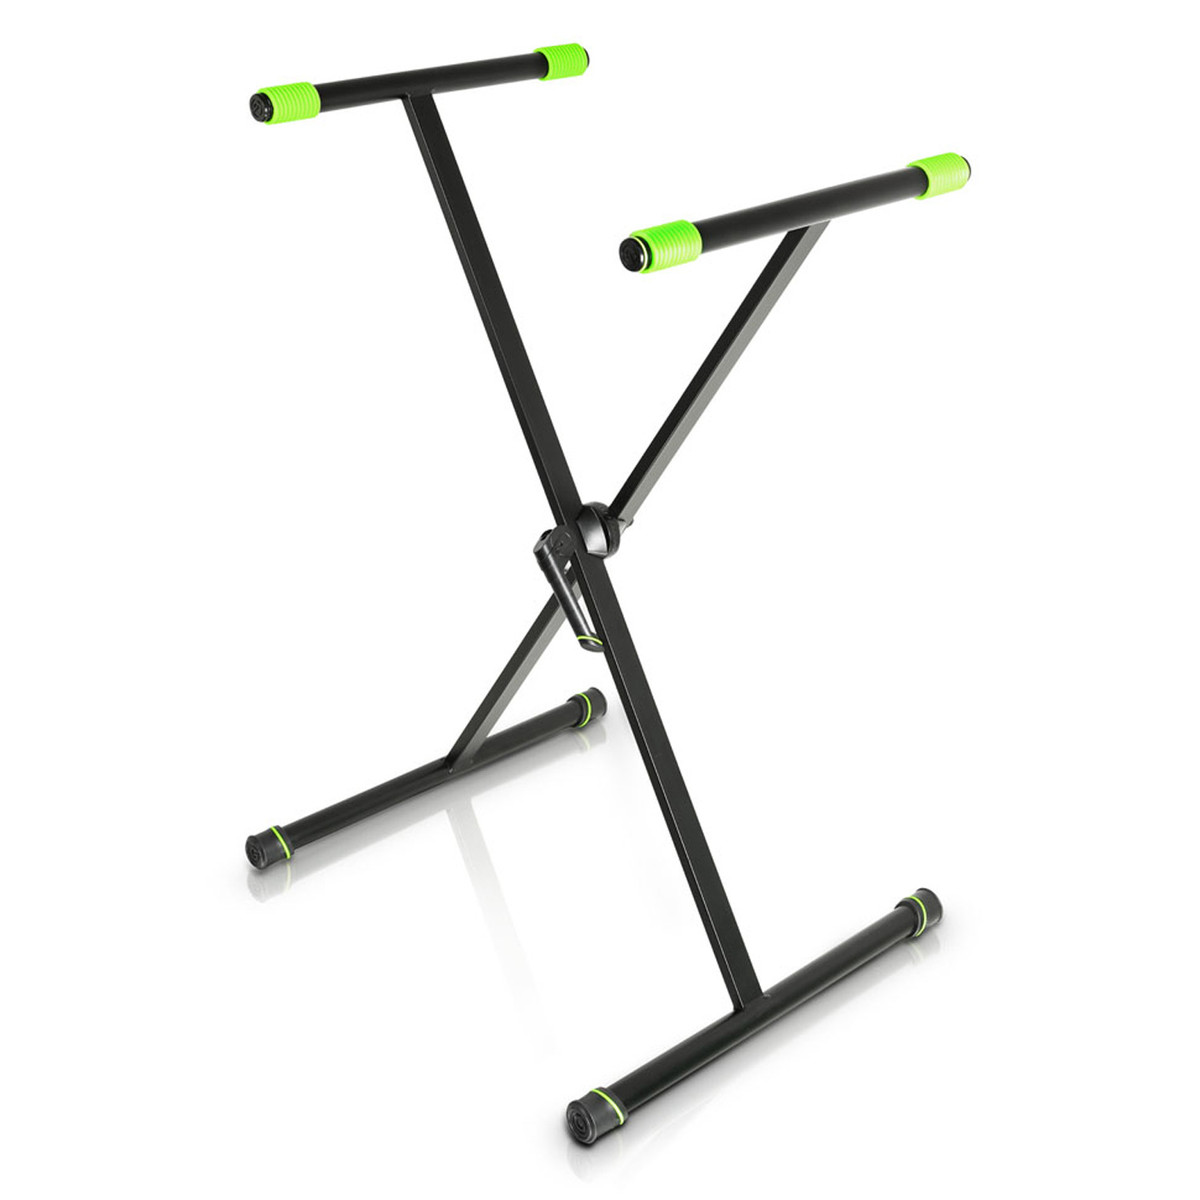 Image of Gravity GKSX1 X-Form Keyboard Stand